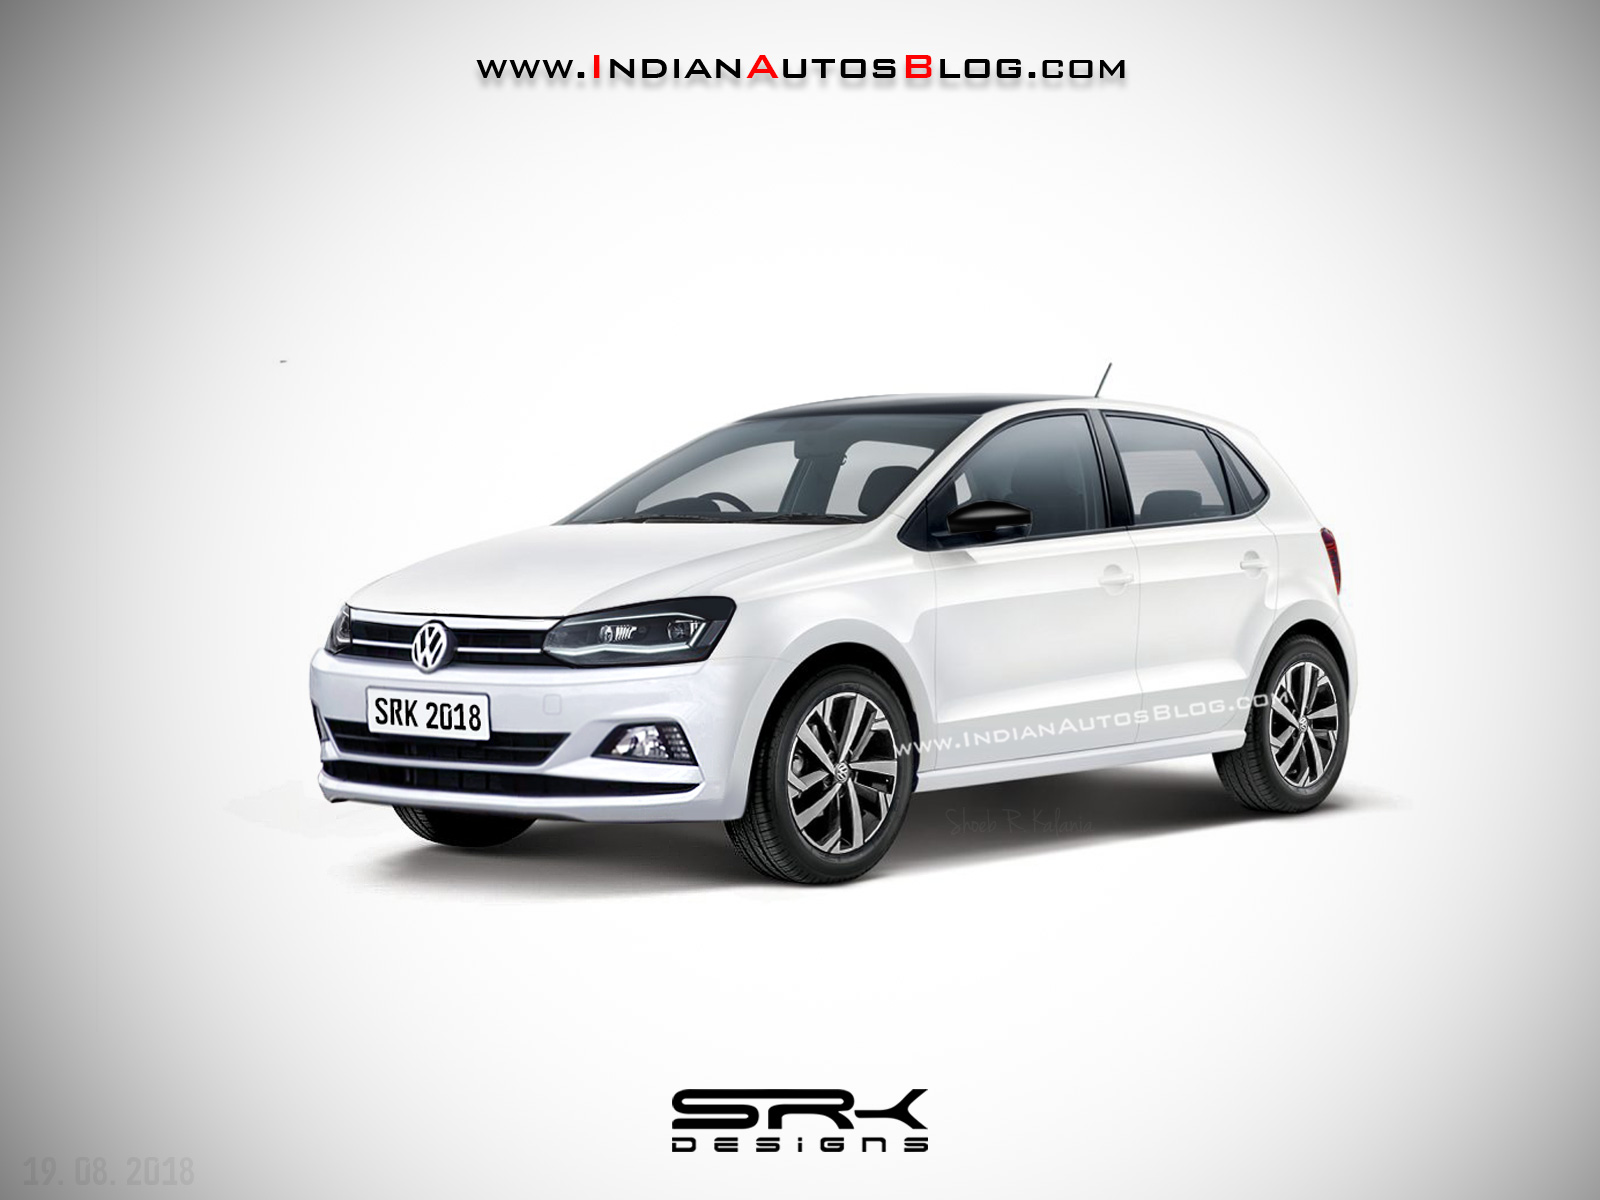 2019 Volkswagen Polo Facelift Rendering Images Polo Gt Tsi 2019 1600x1200 Wallpaper Teahub Io